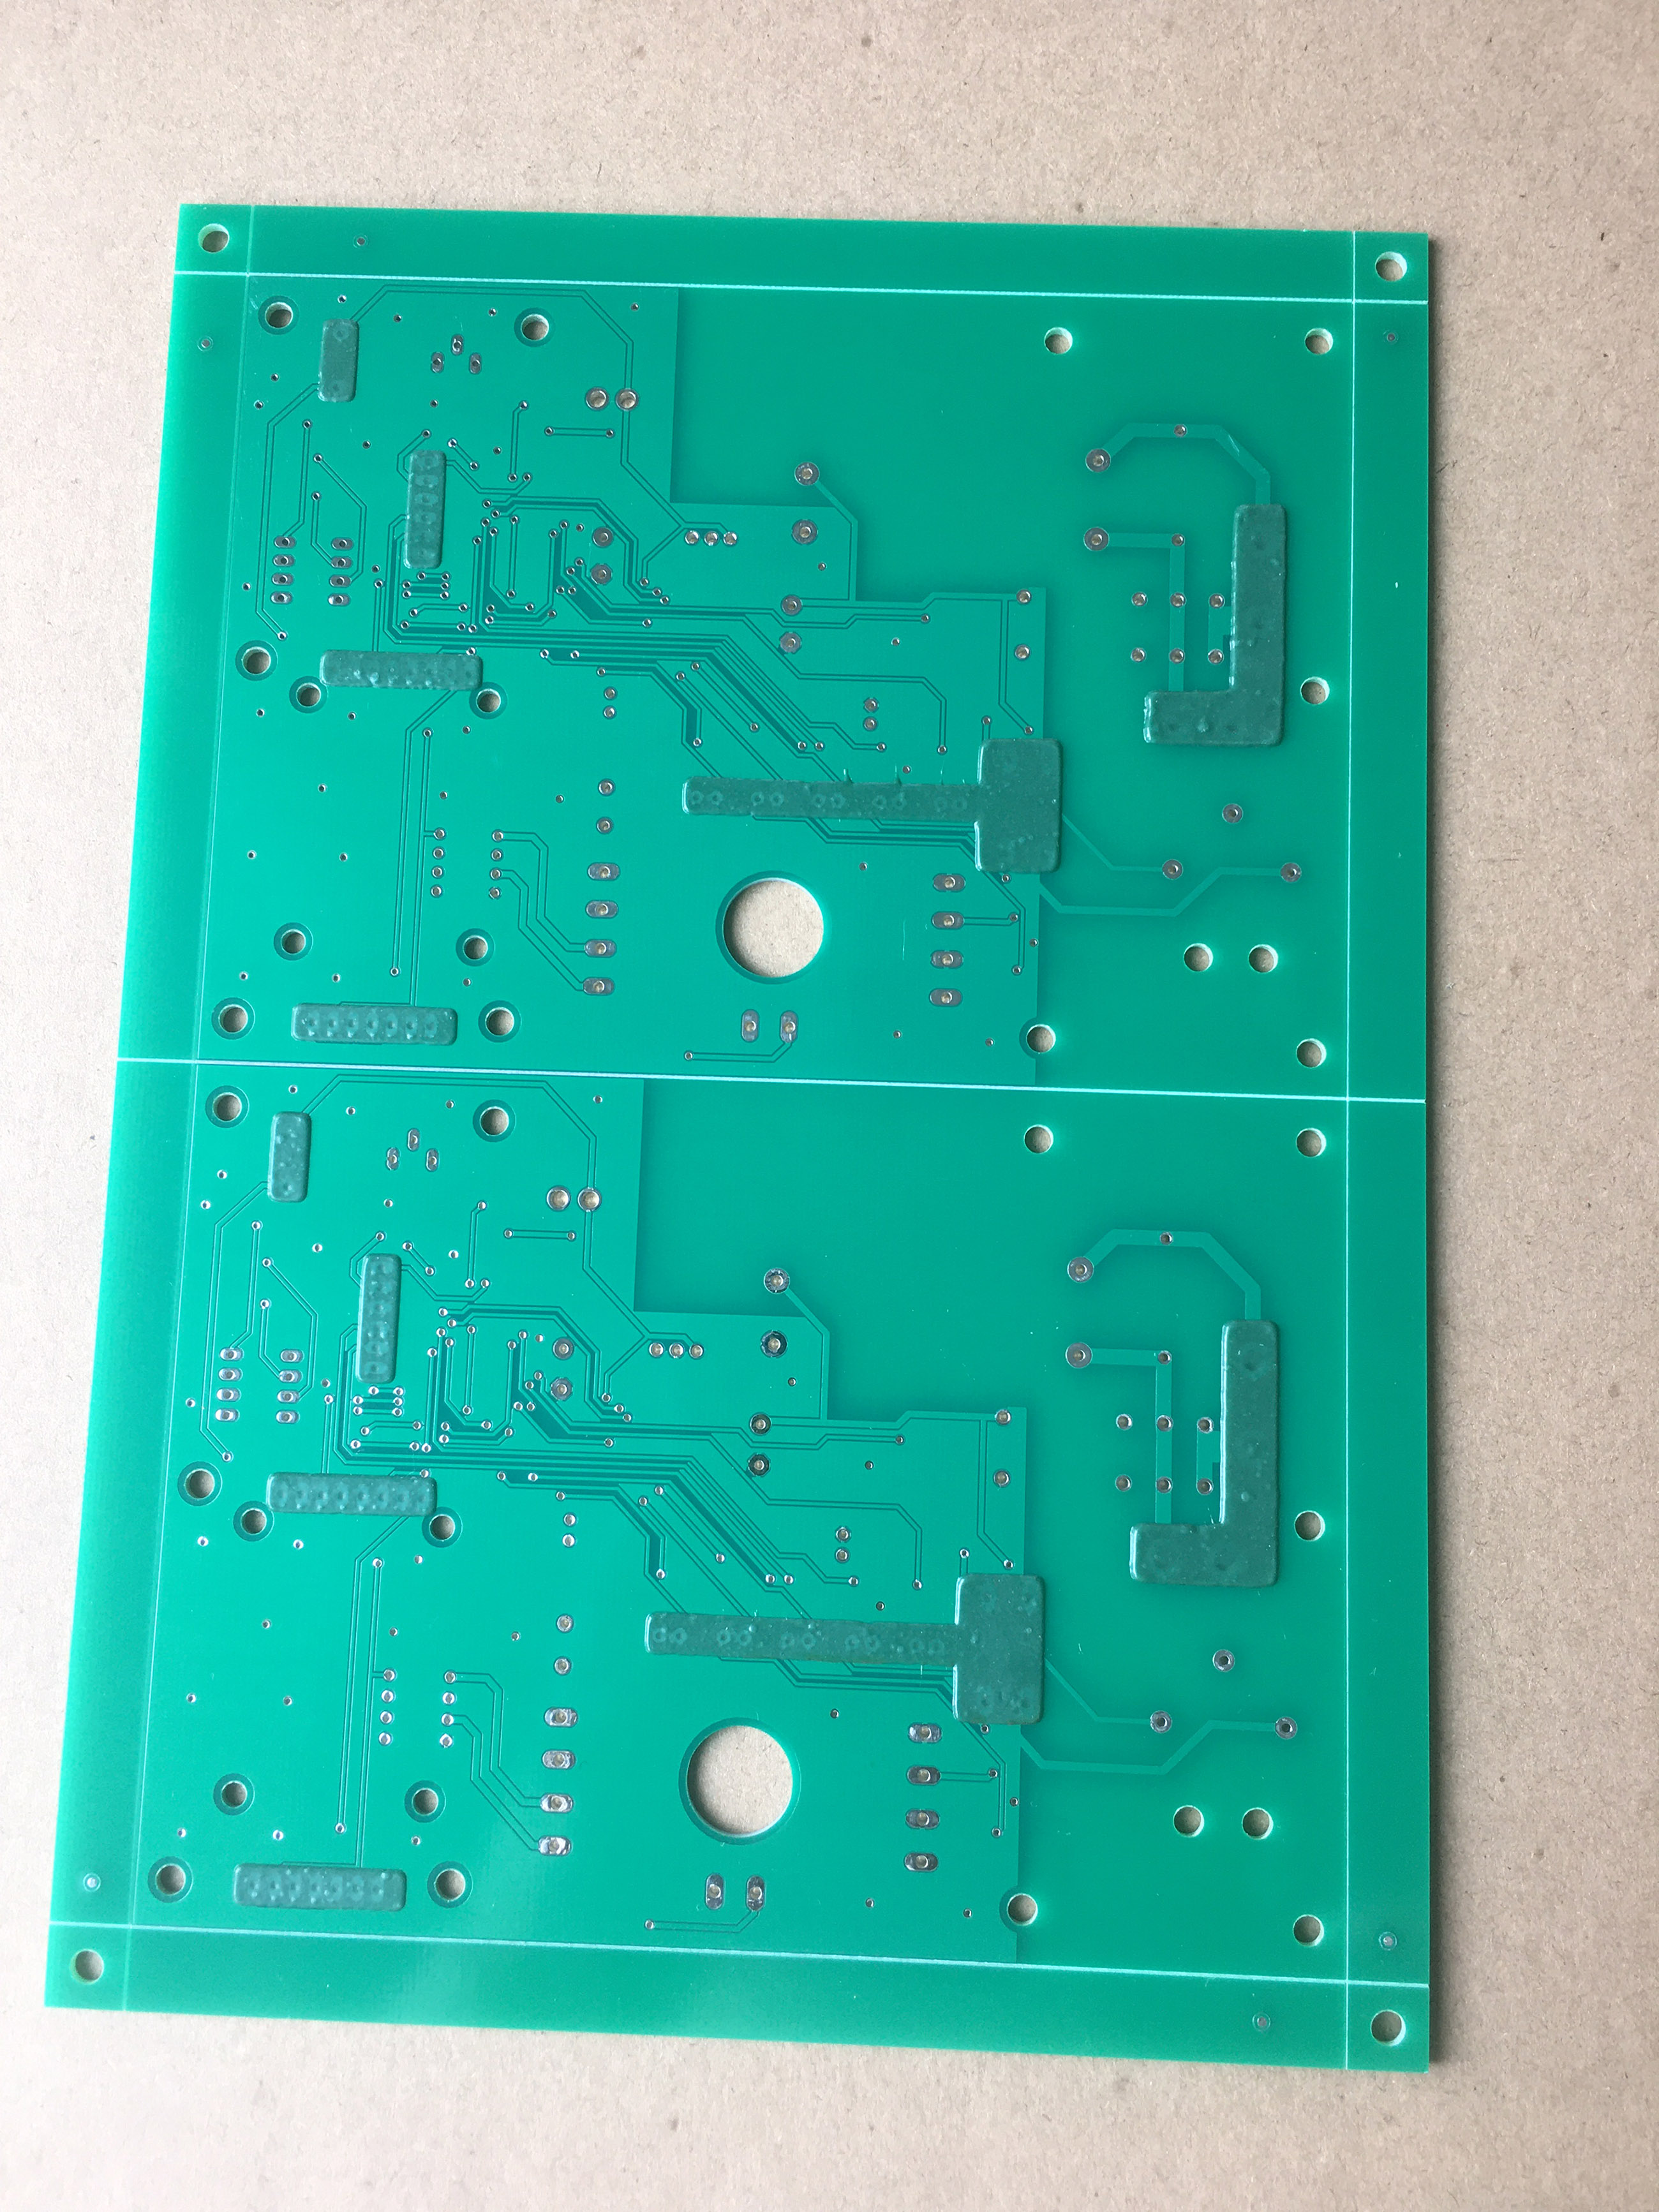 What is peelable solder mask